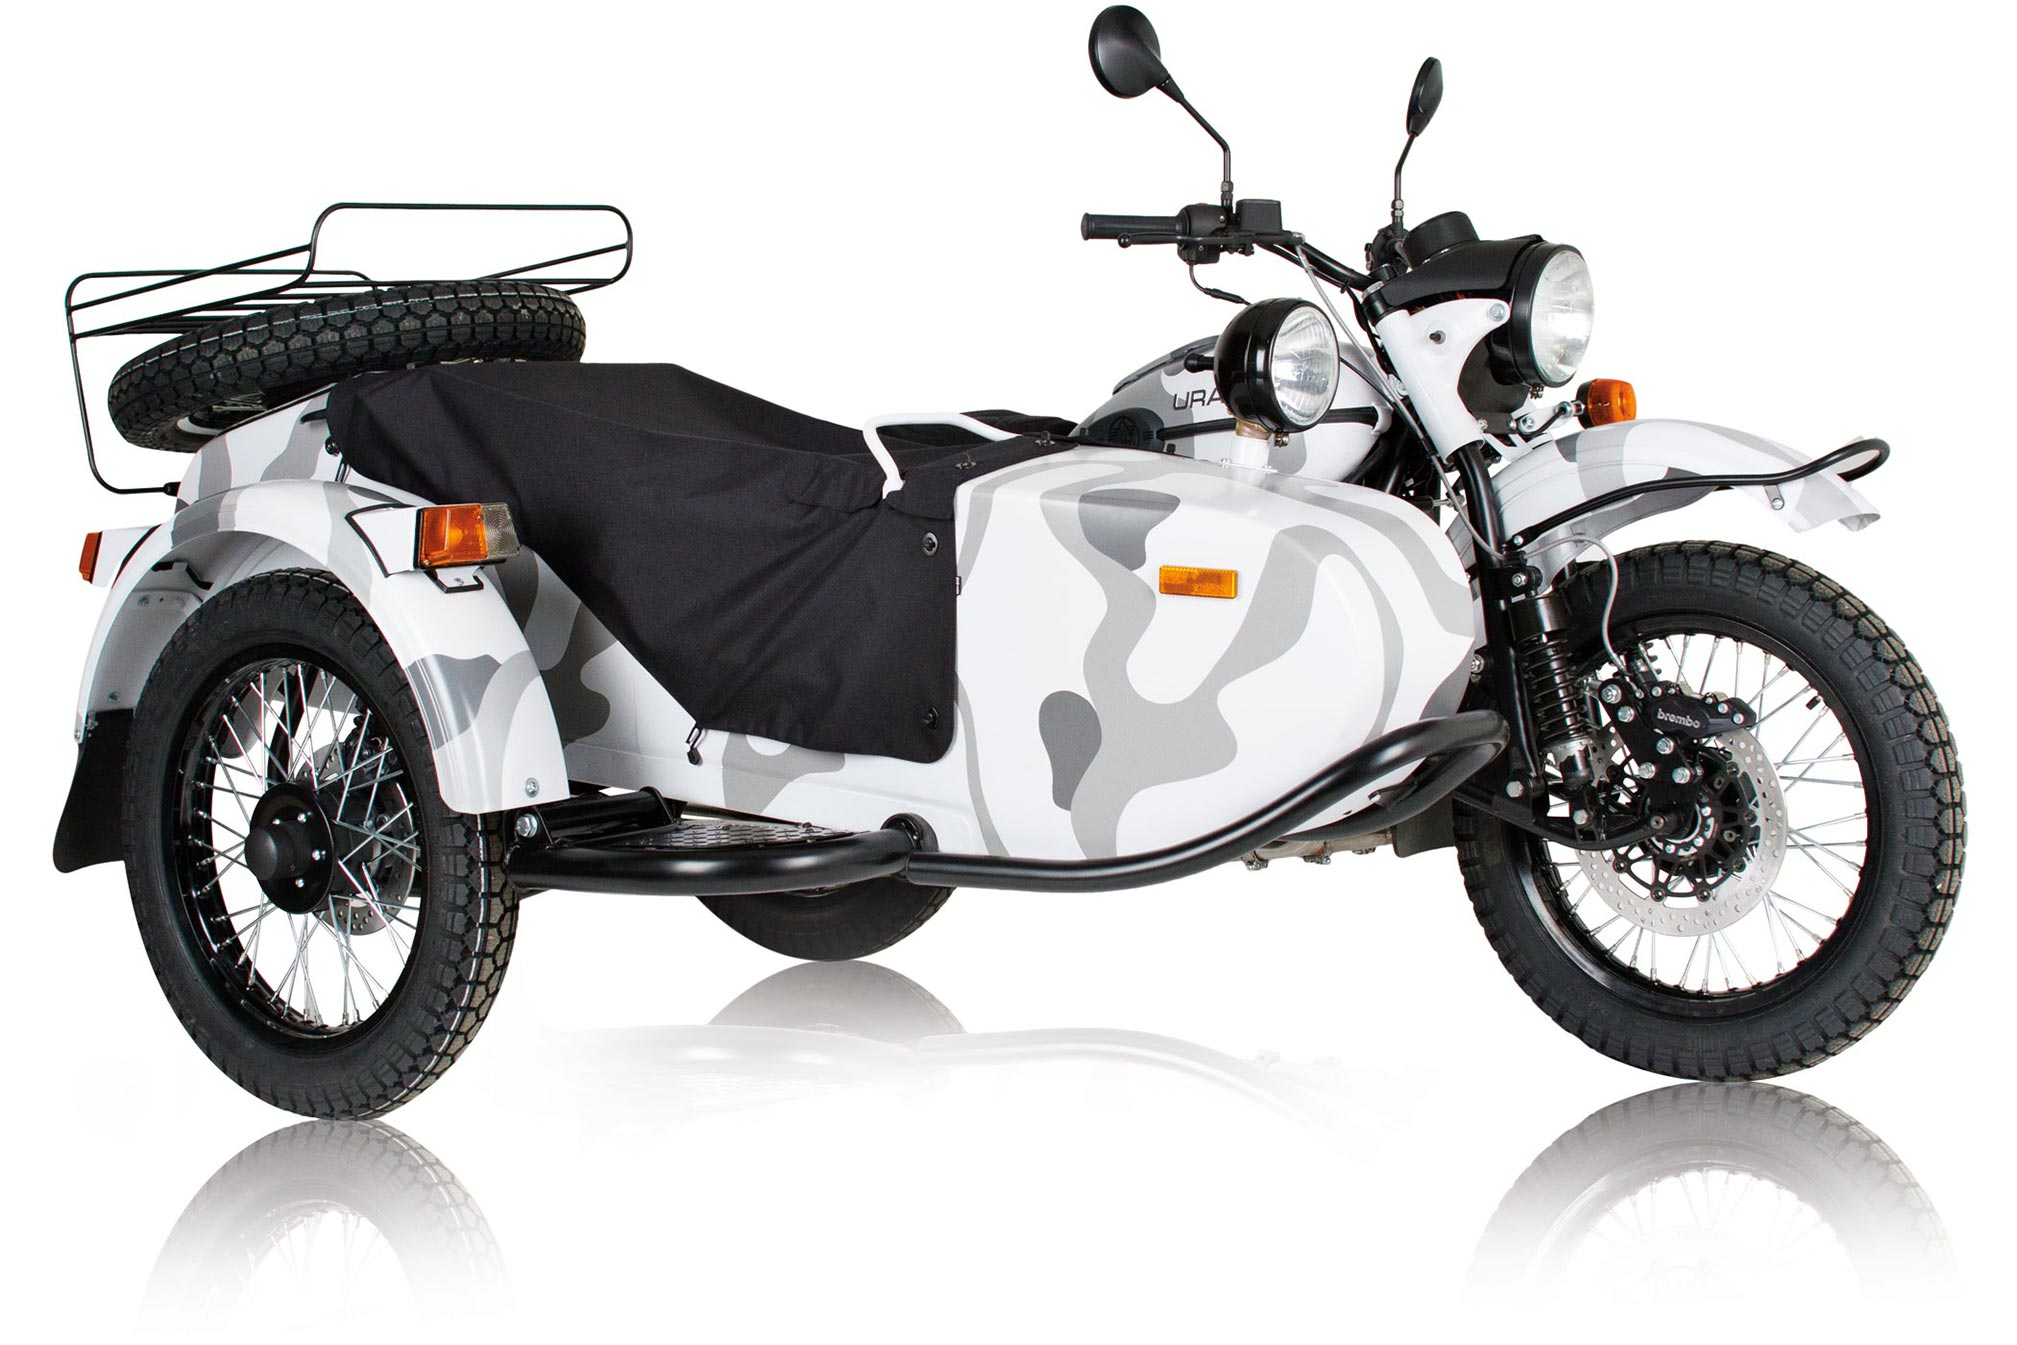 2017 Ural Gear Up Review